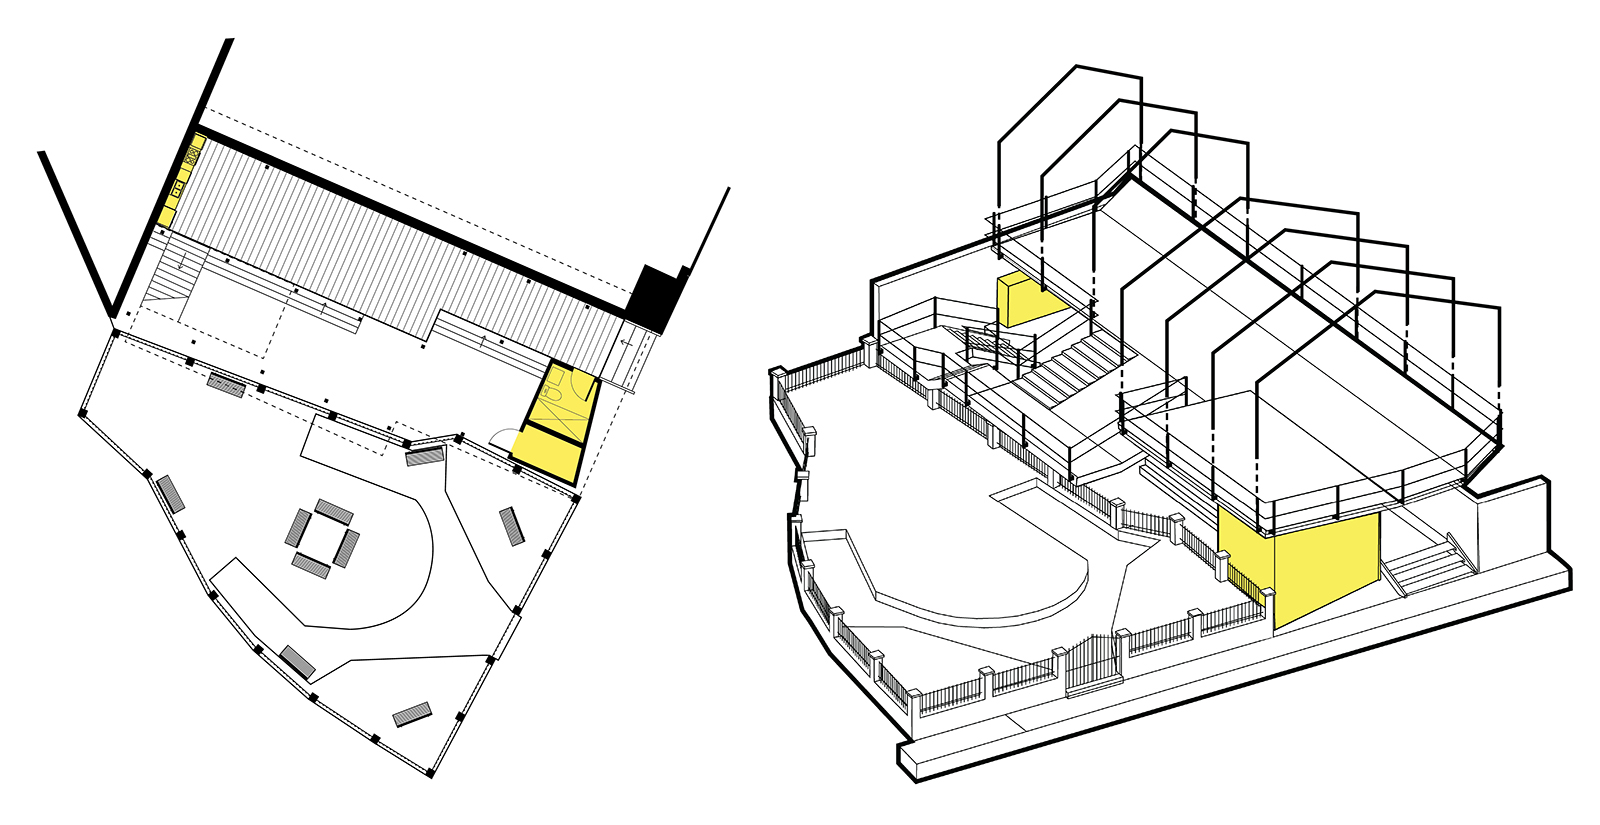 Plan and massing drawings showing the extent of the Phase 1 YELE build-out for bare minimal bathroom resources and space